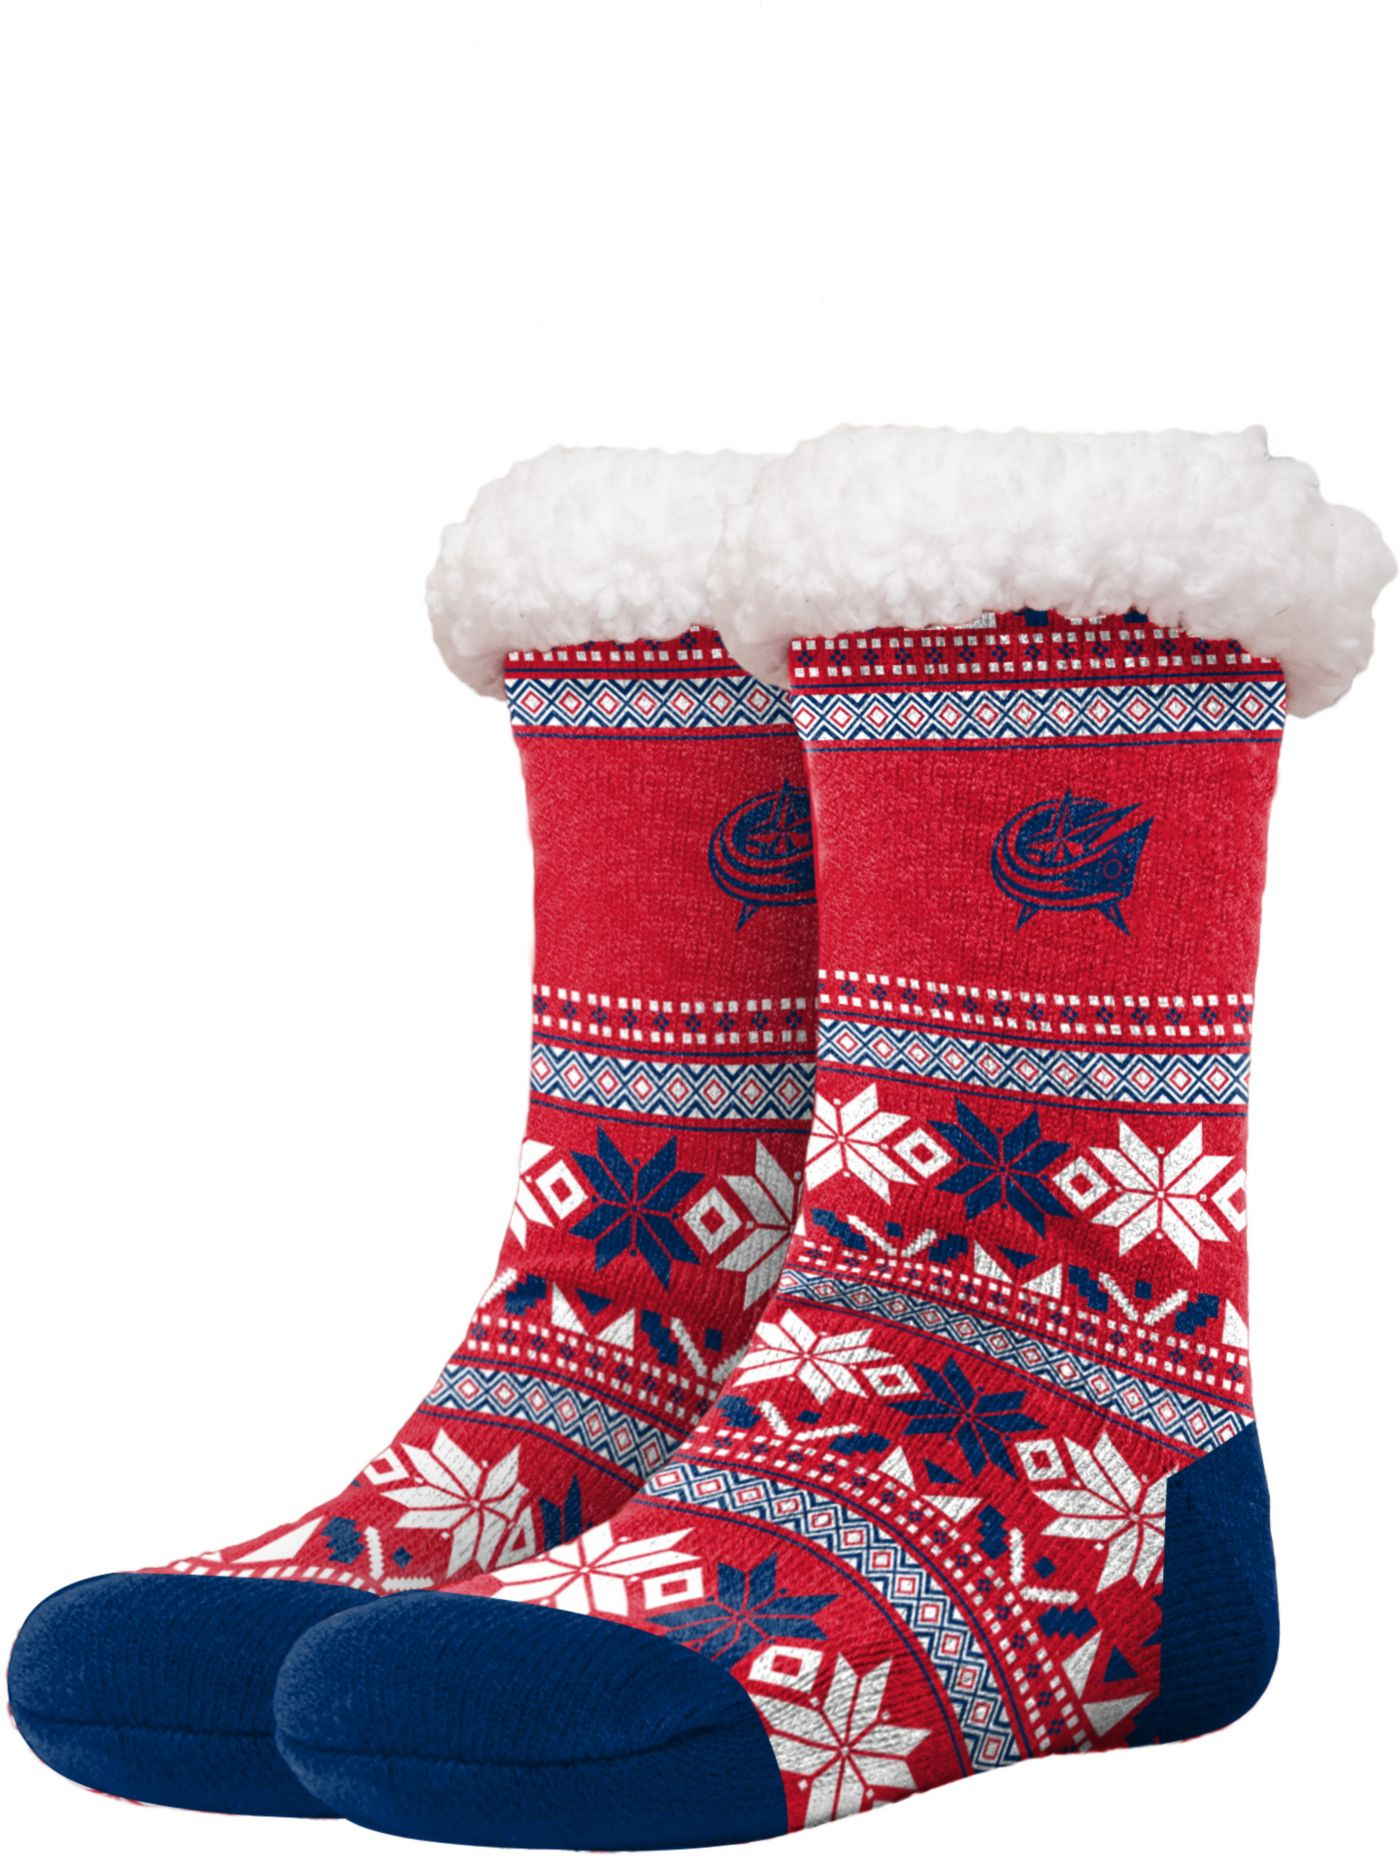 FOCO Columbus Bluejackets Footy Slippers